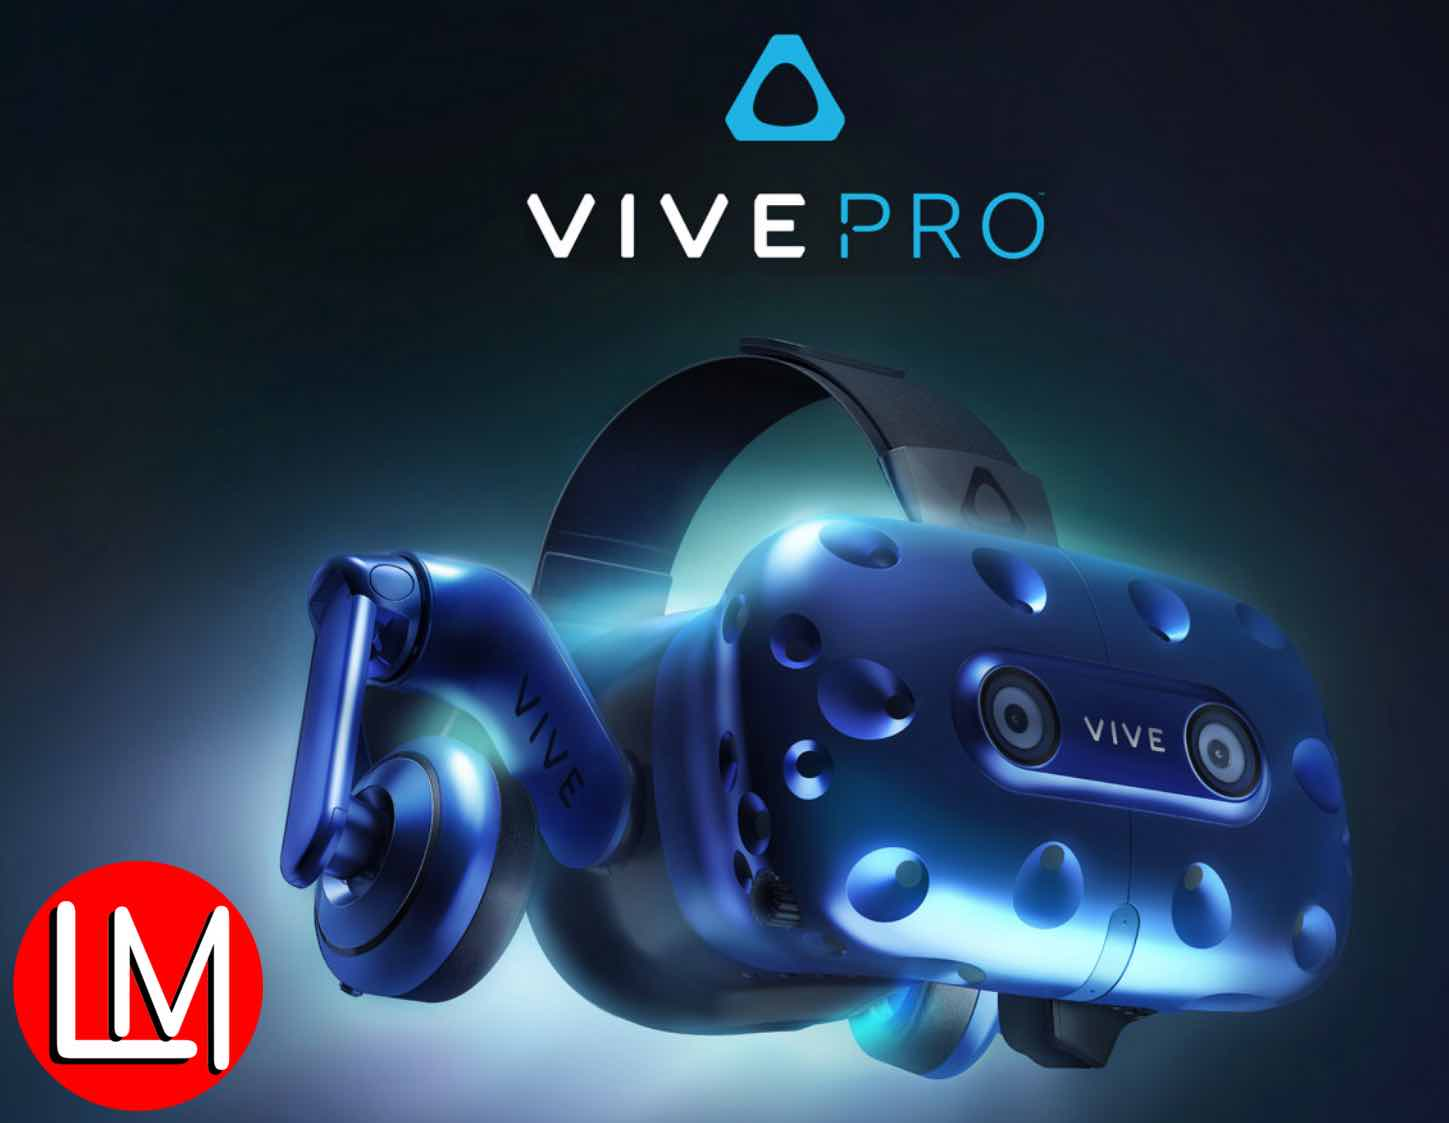 HTC launches 'Vibe Pro' an immersive Virtual reality(VR) device